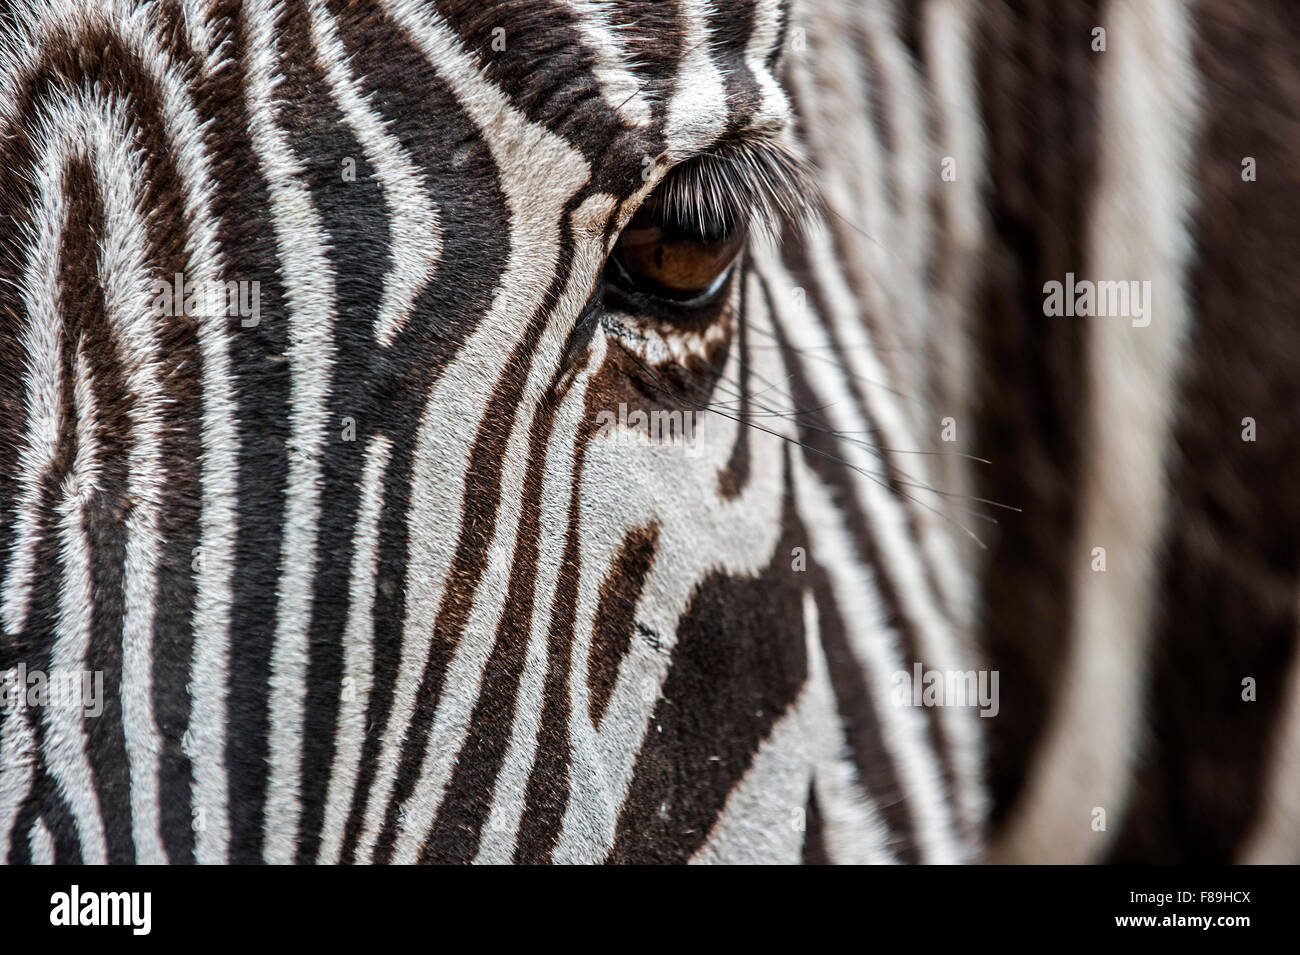 Grévy's zebra / imperial zebra (Equus grevyi) native to Kenya and Ethiopia, close up of striped head - Stock Image